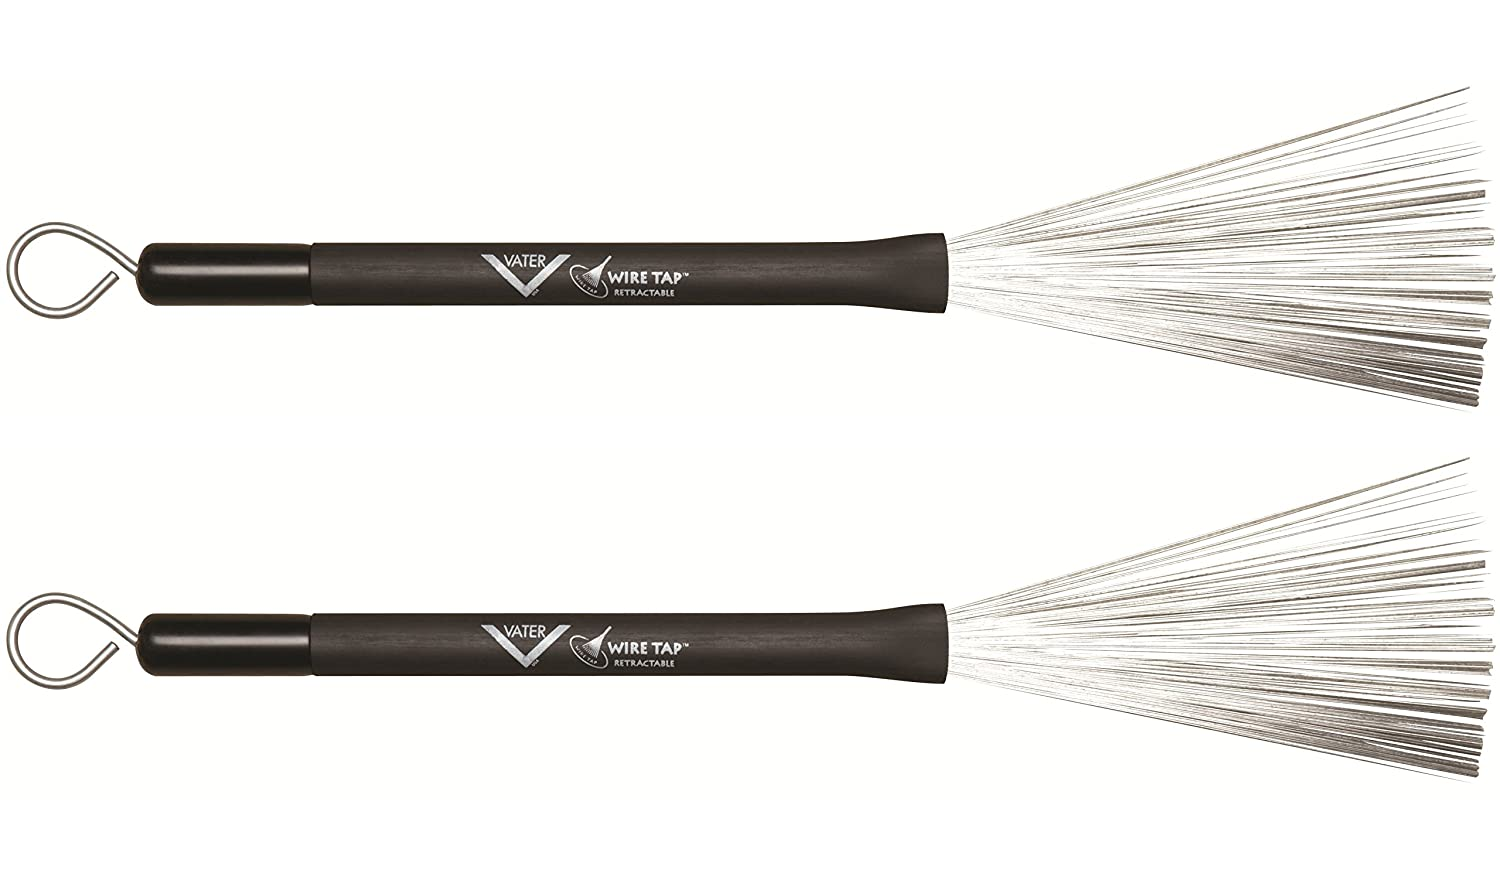 Amazon.com: Vater VWTR Retractable Wire Brushes: Musical Instruments